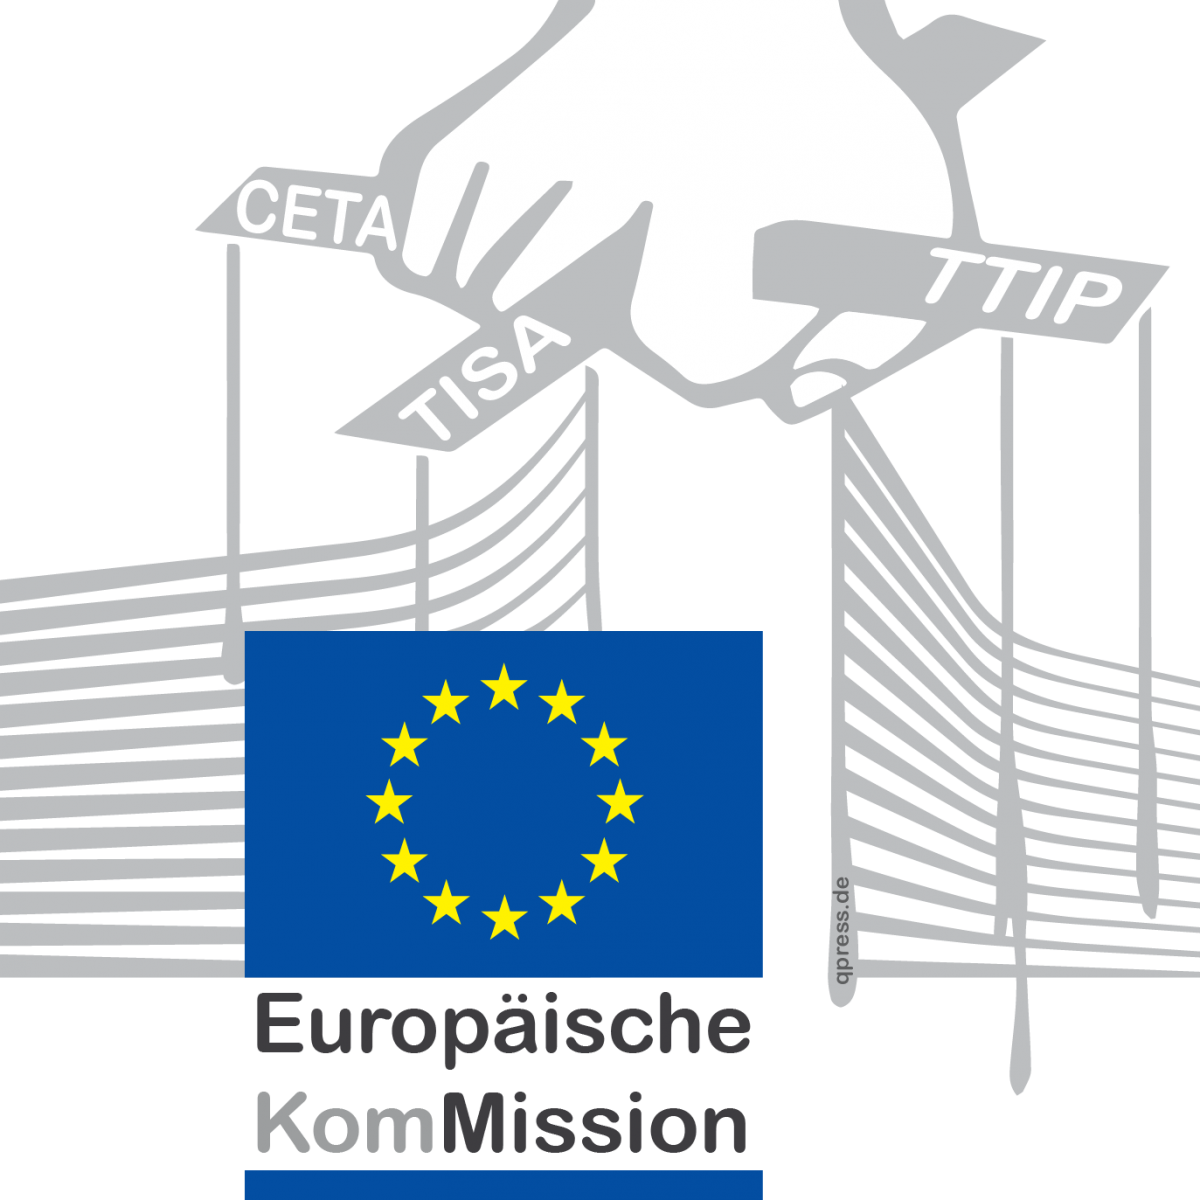 europaeische_eu_kommission_ceta_ttip_freihandelsbkommen_tisa_kritisches_netzwerk_tpp_monsanto_comprehensive_economic_trade_agreement_nafta_tafta_kanada_canada